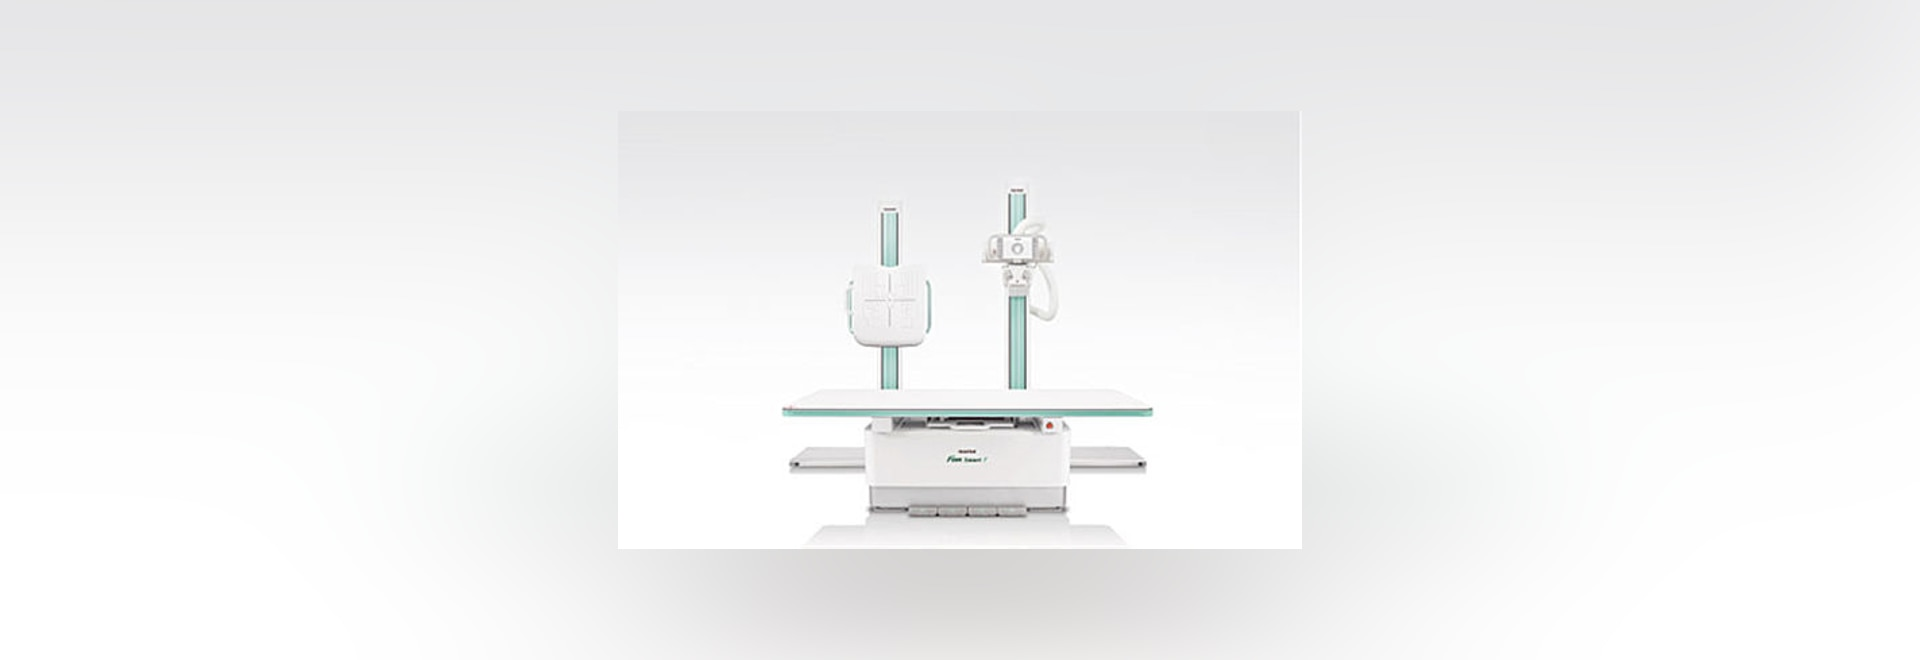 FDR Smart f - Fujifilm's latest high-quality, cost effective x-ray system